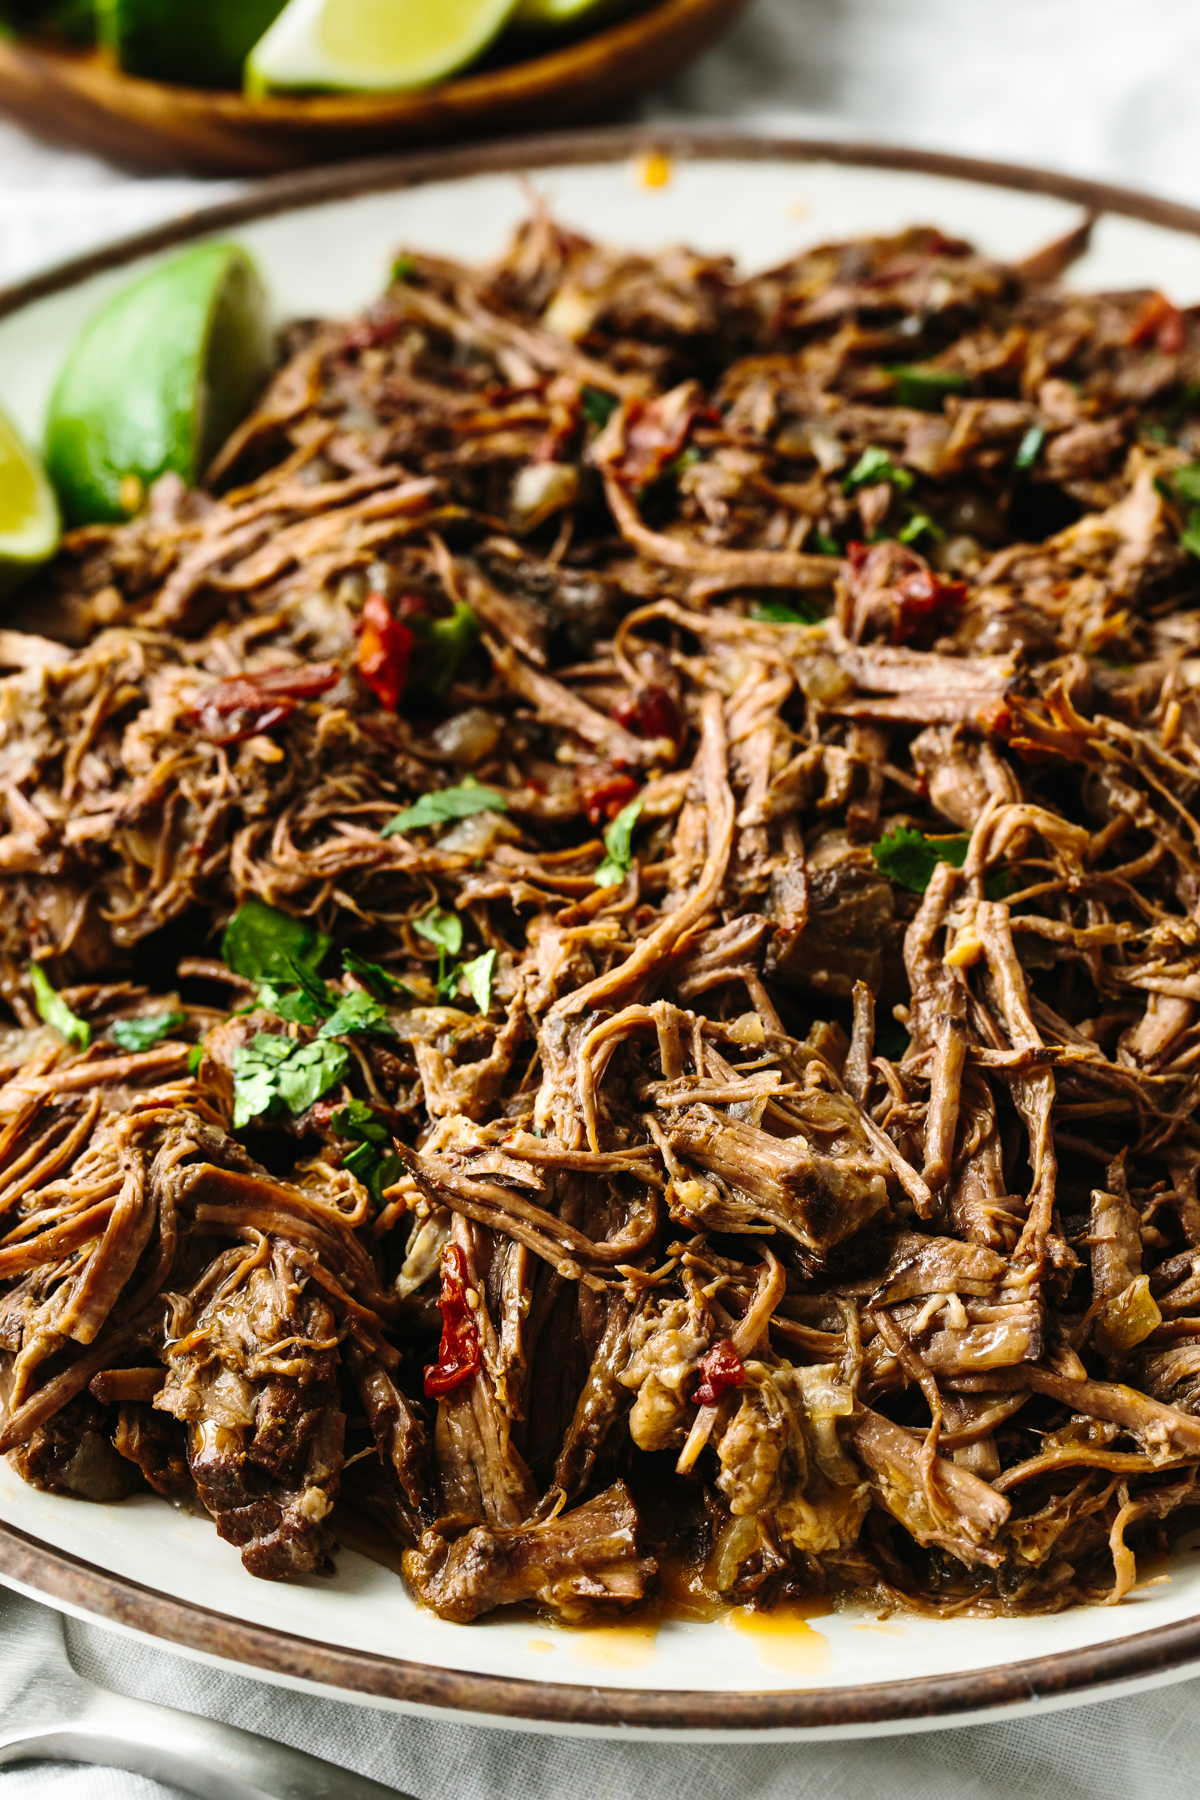 A plate with beef barbacoa on it.